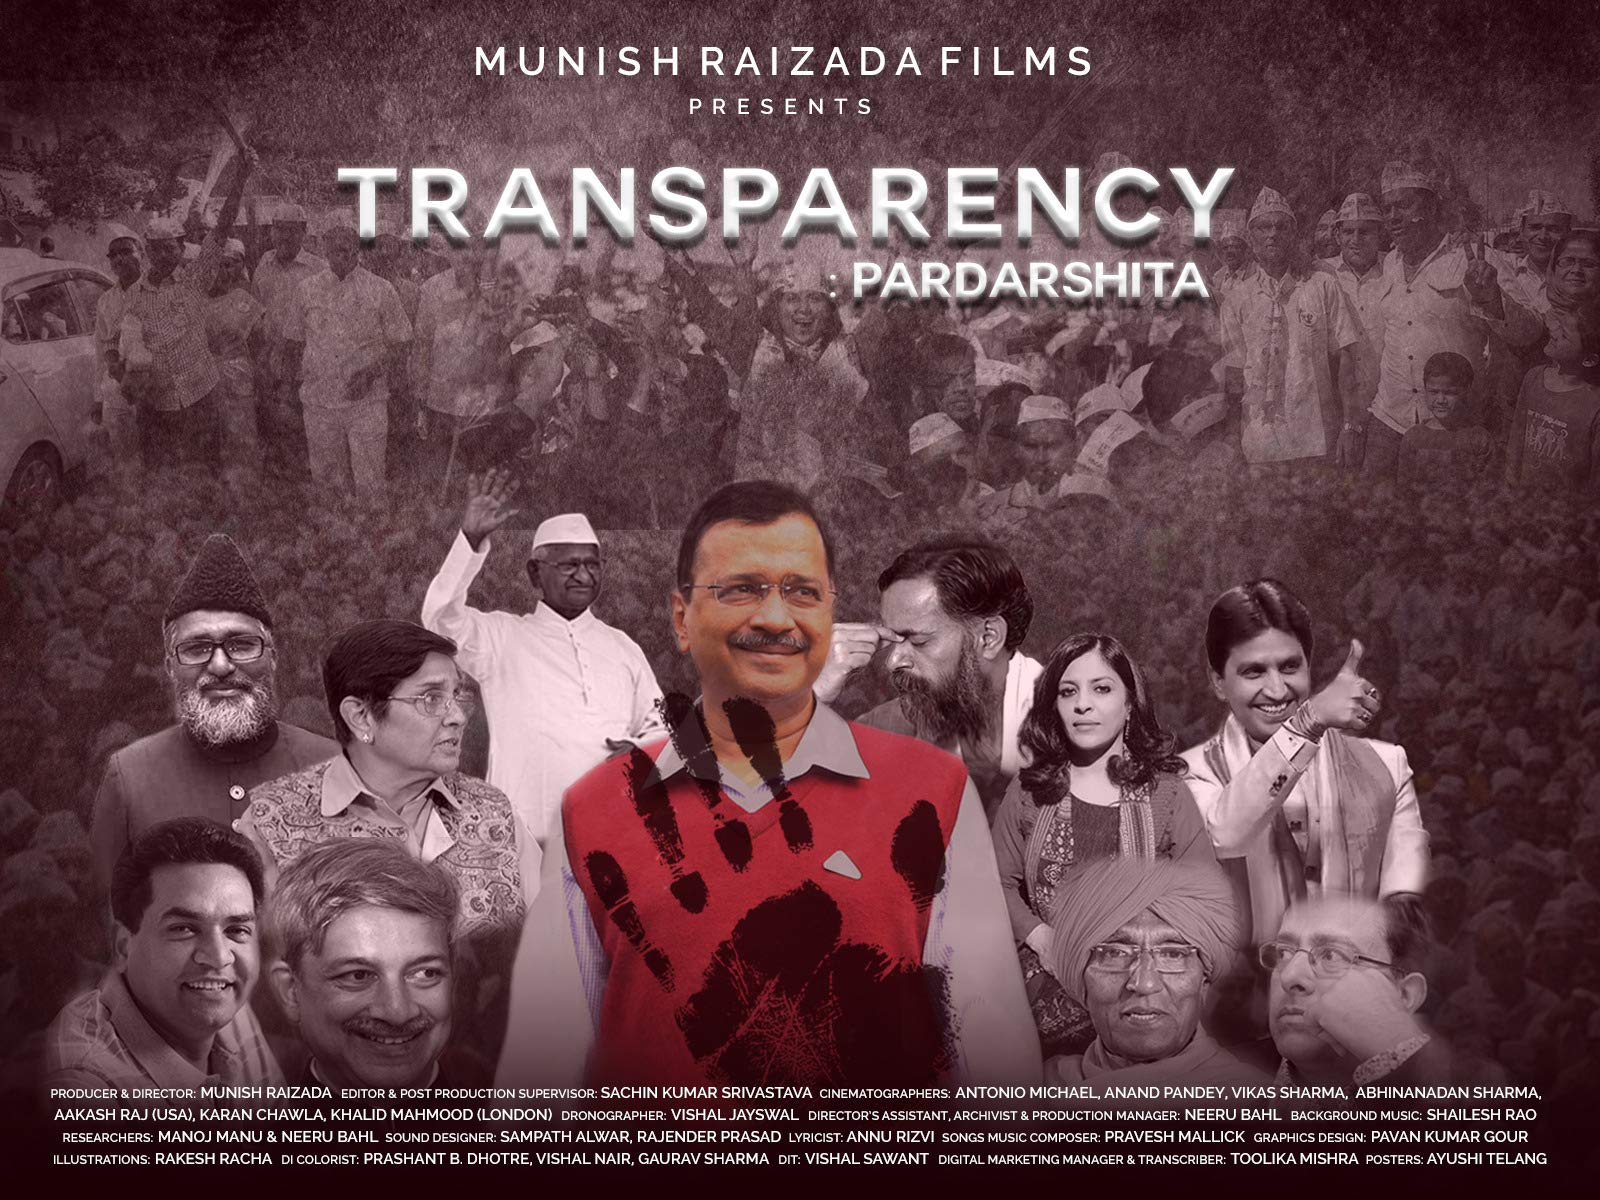 Transparency: Pardarshita